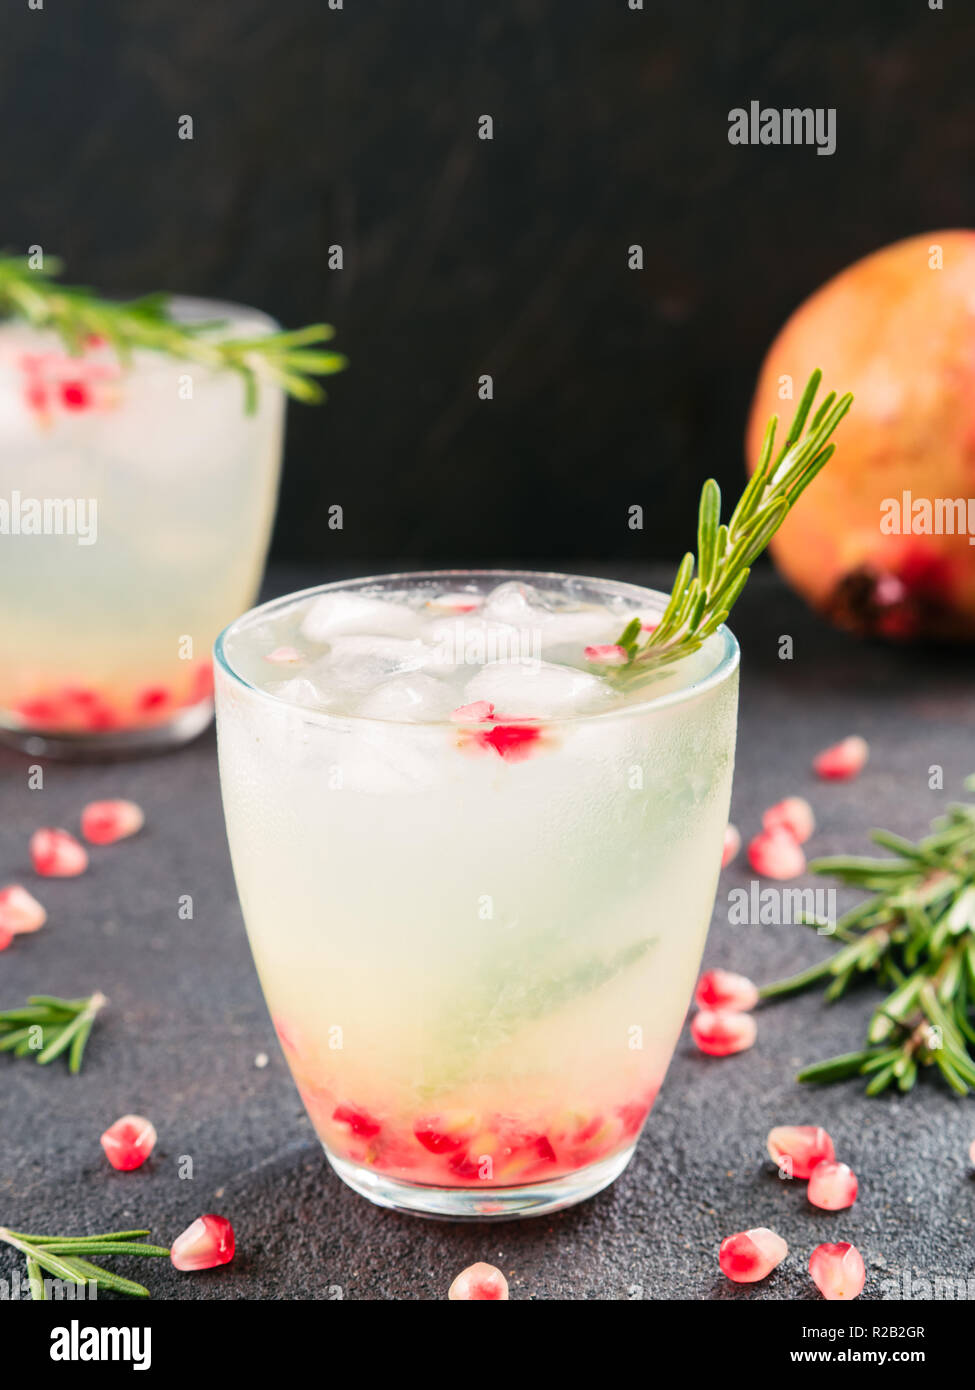 Autumn and winter cocktails idea - white sangria with rosemary, pomegrante and lemon juice and ingredients on black cement background. - Stock Image